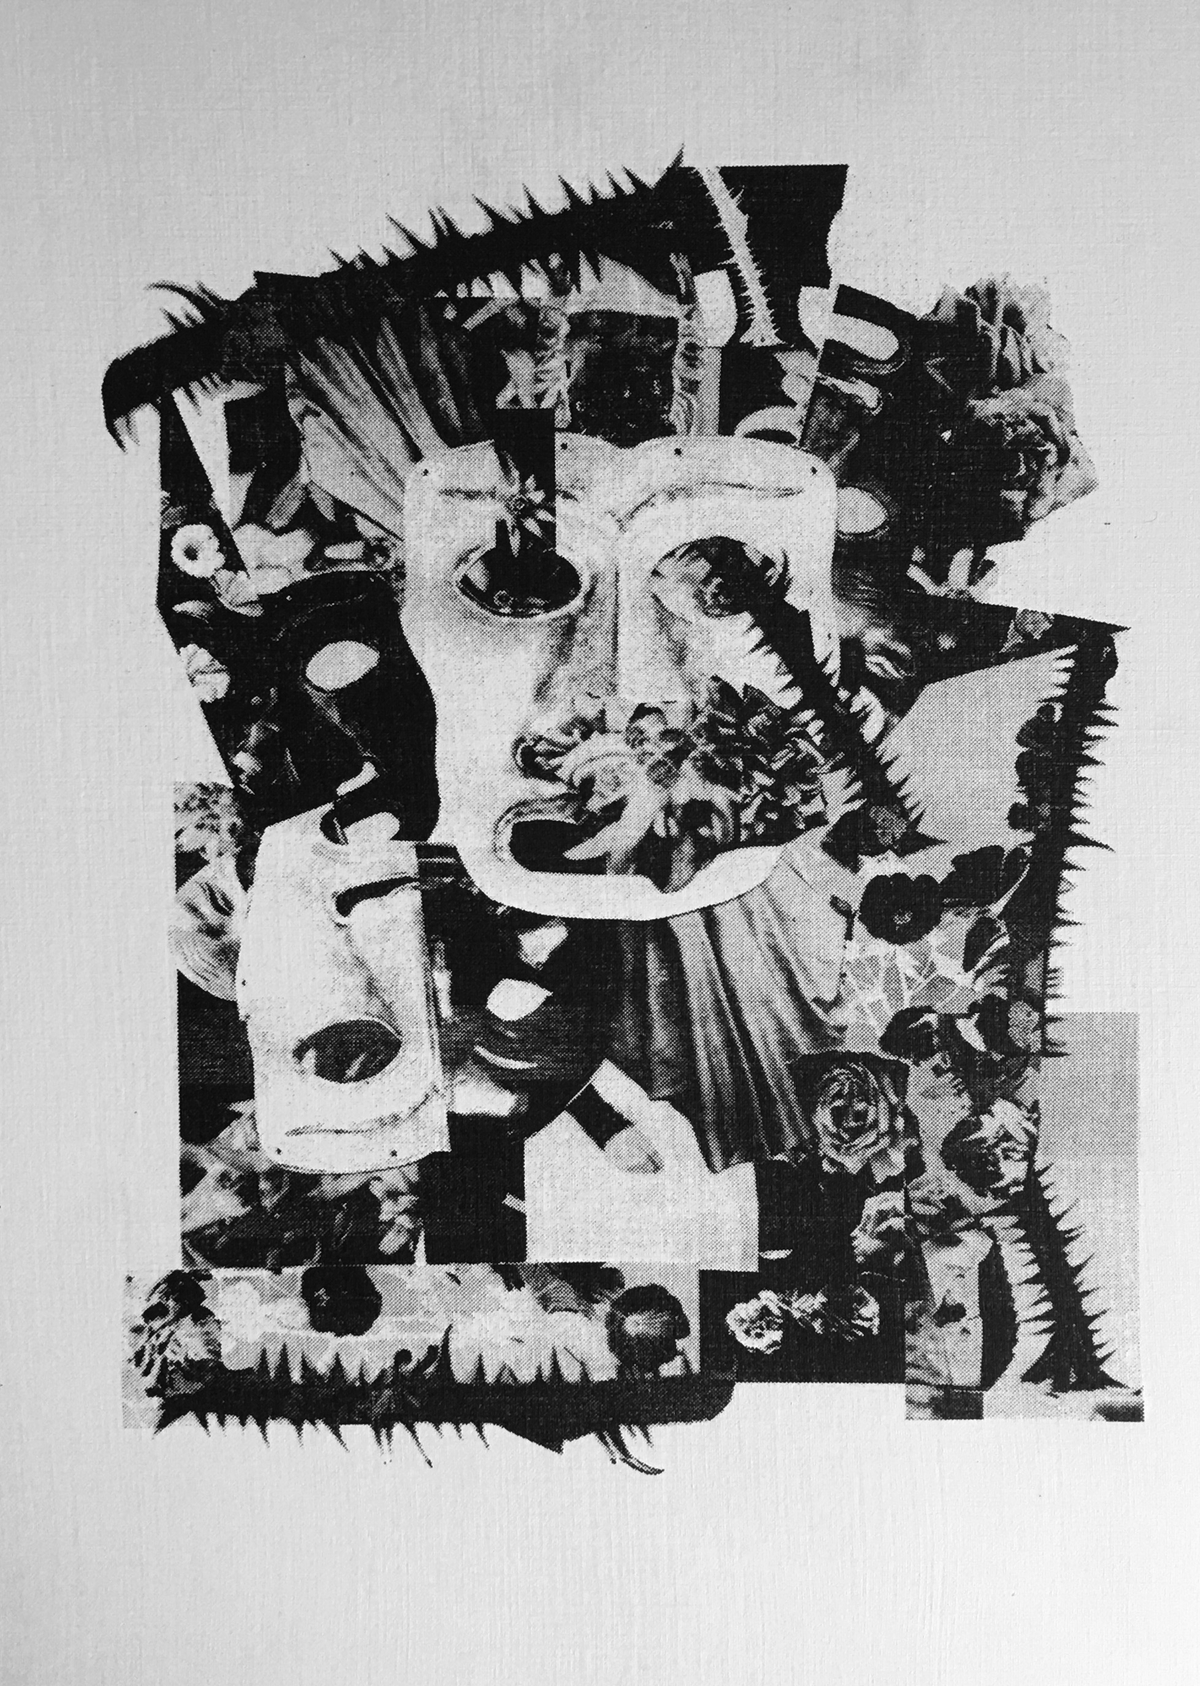 Image of THE FOREST OF ILLUSIONS - A3 RISOGRAPH PRINT